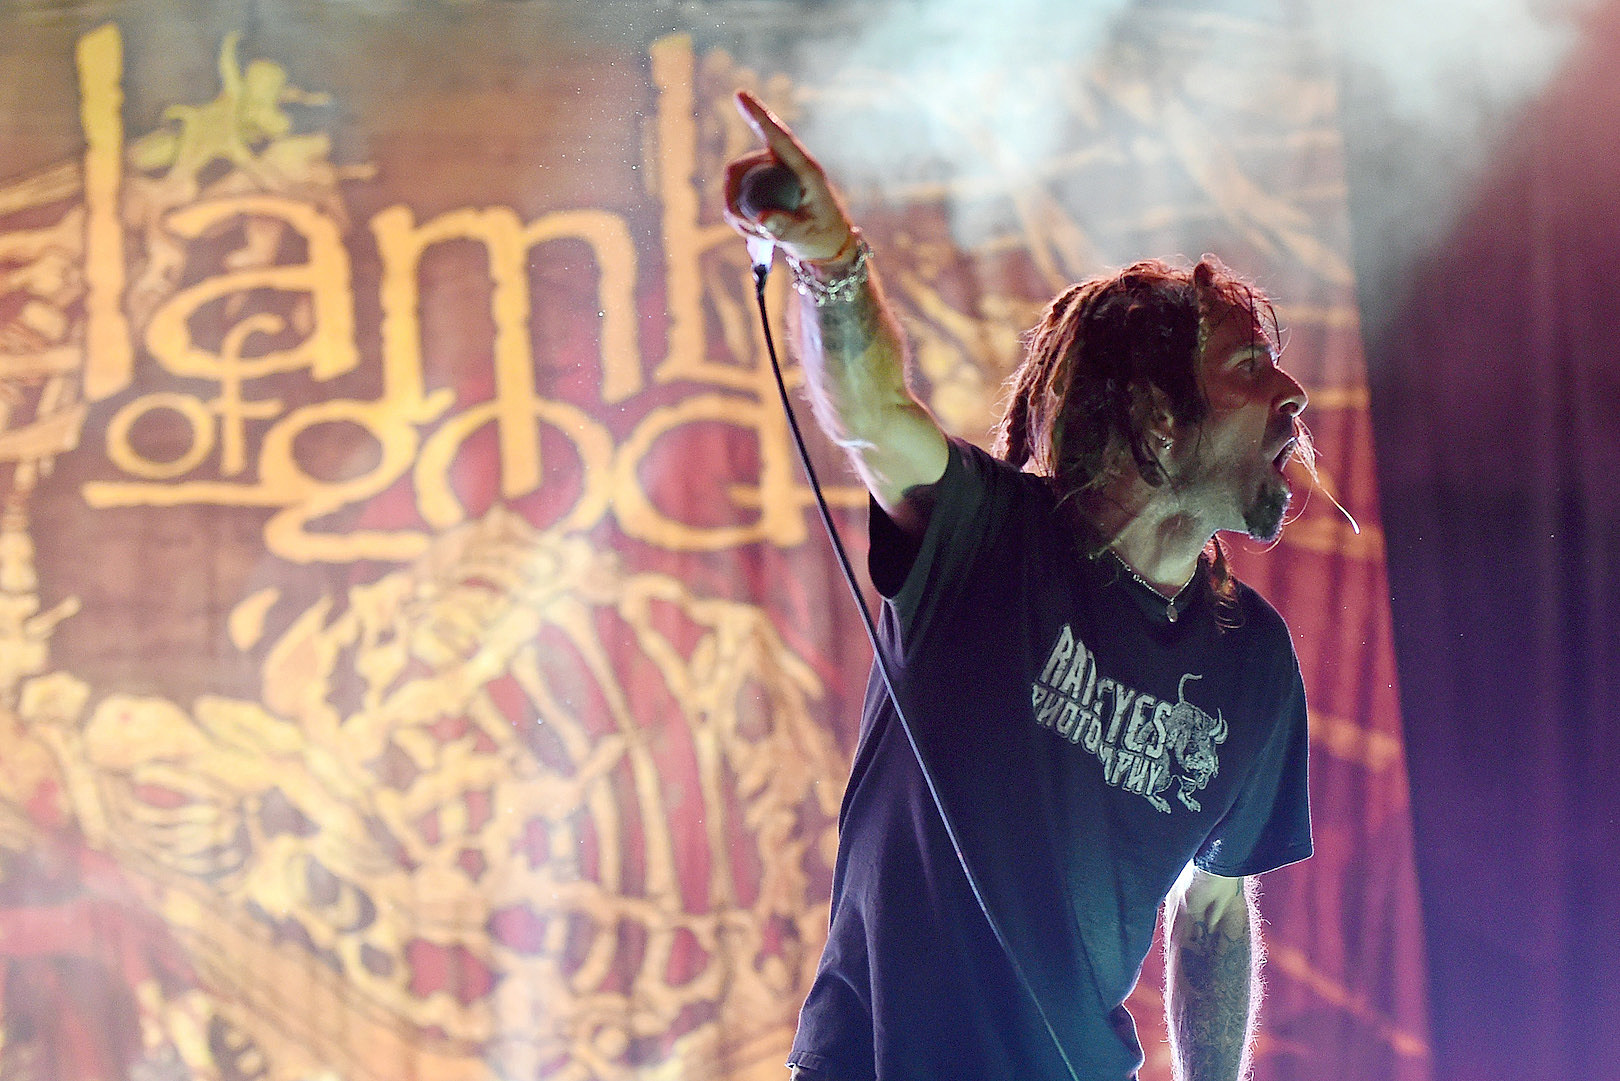 Three Men Arrested in Lamb of God Guitar Theft